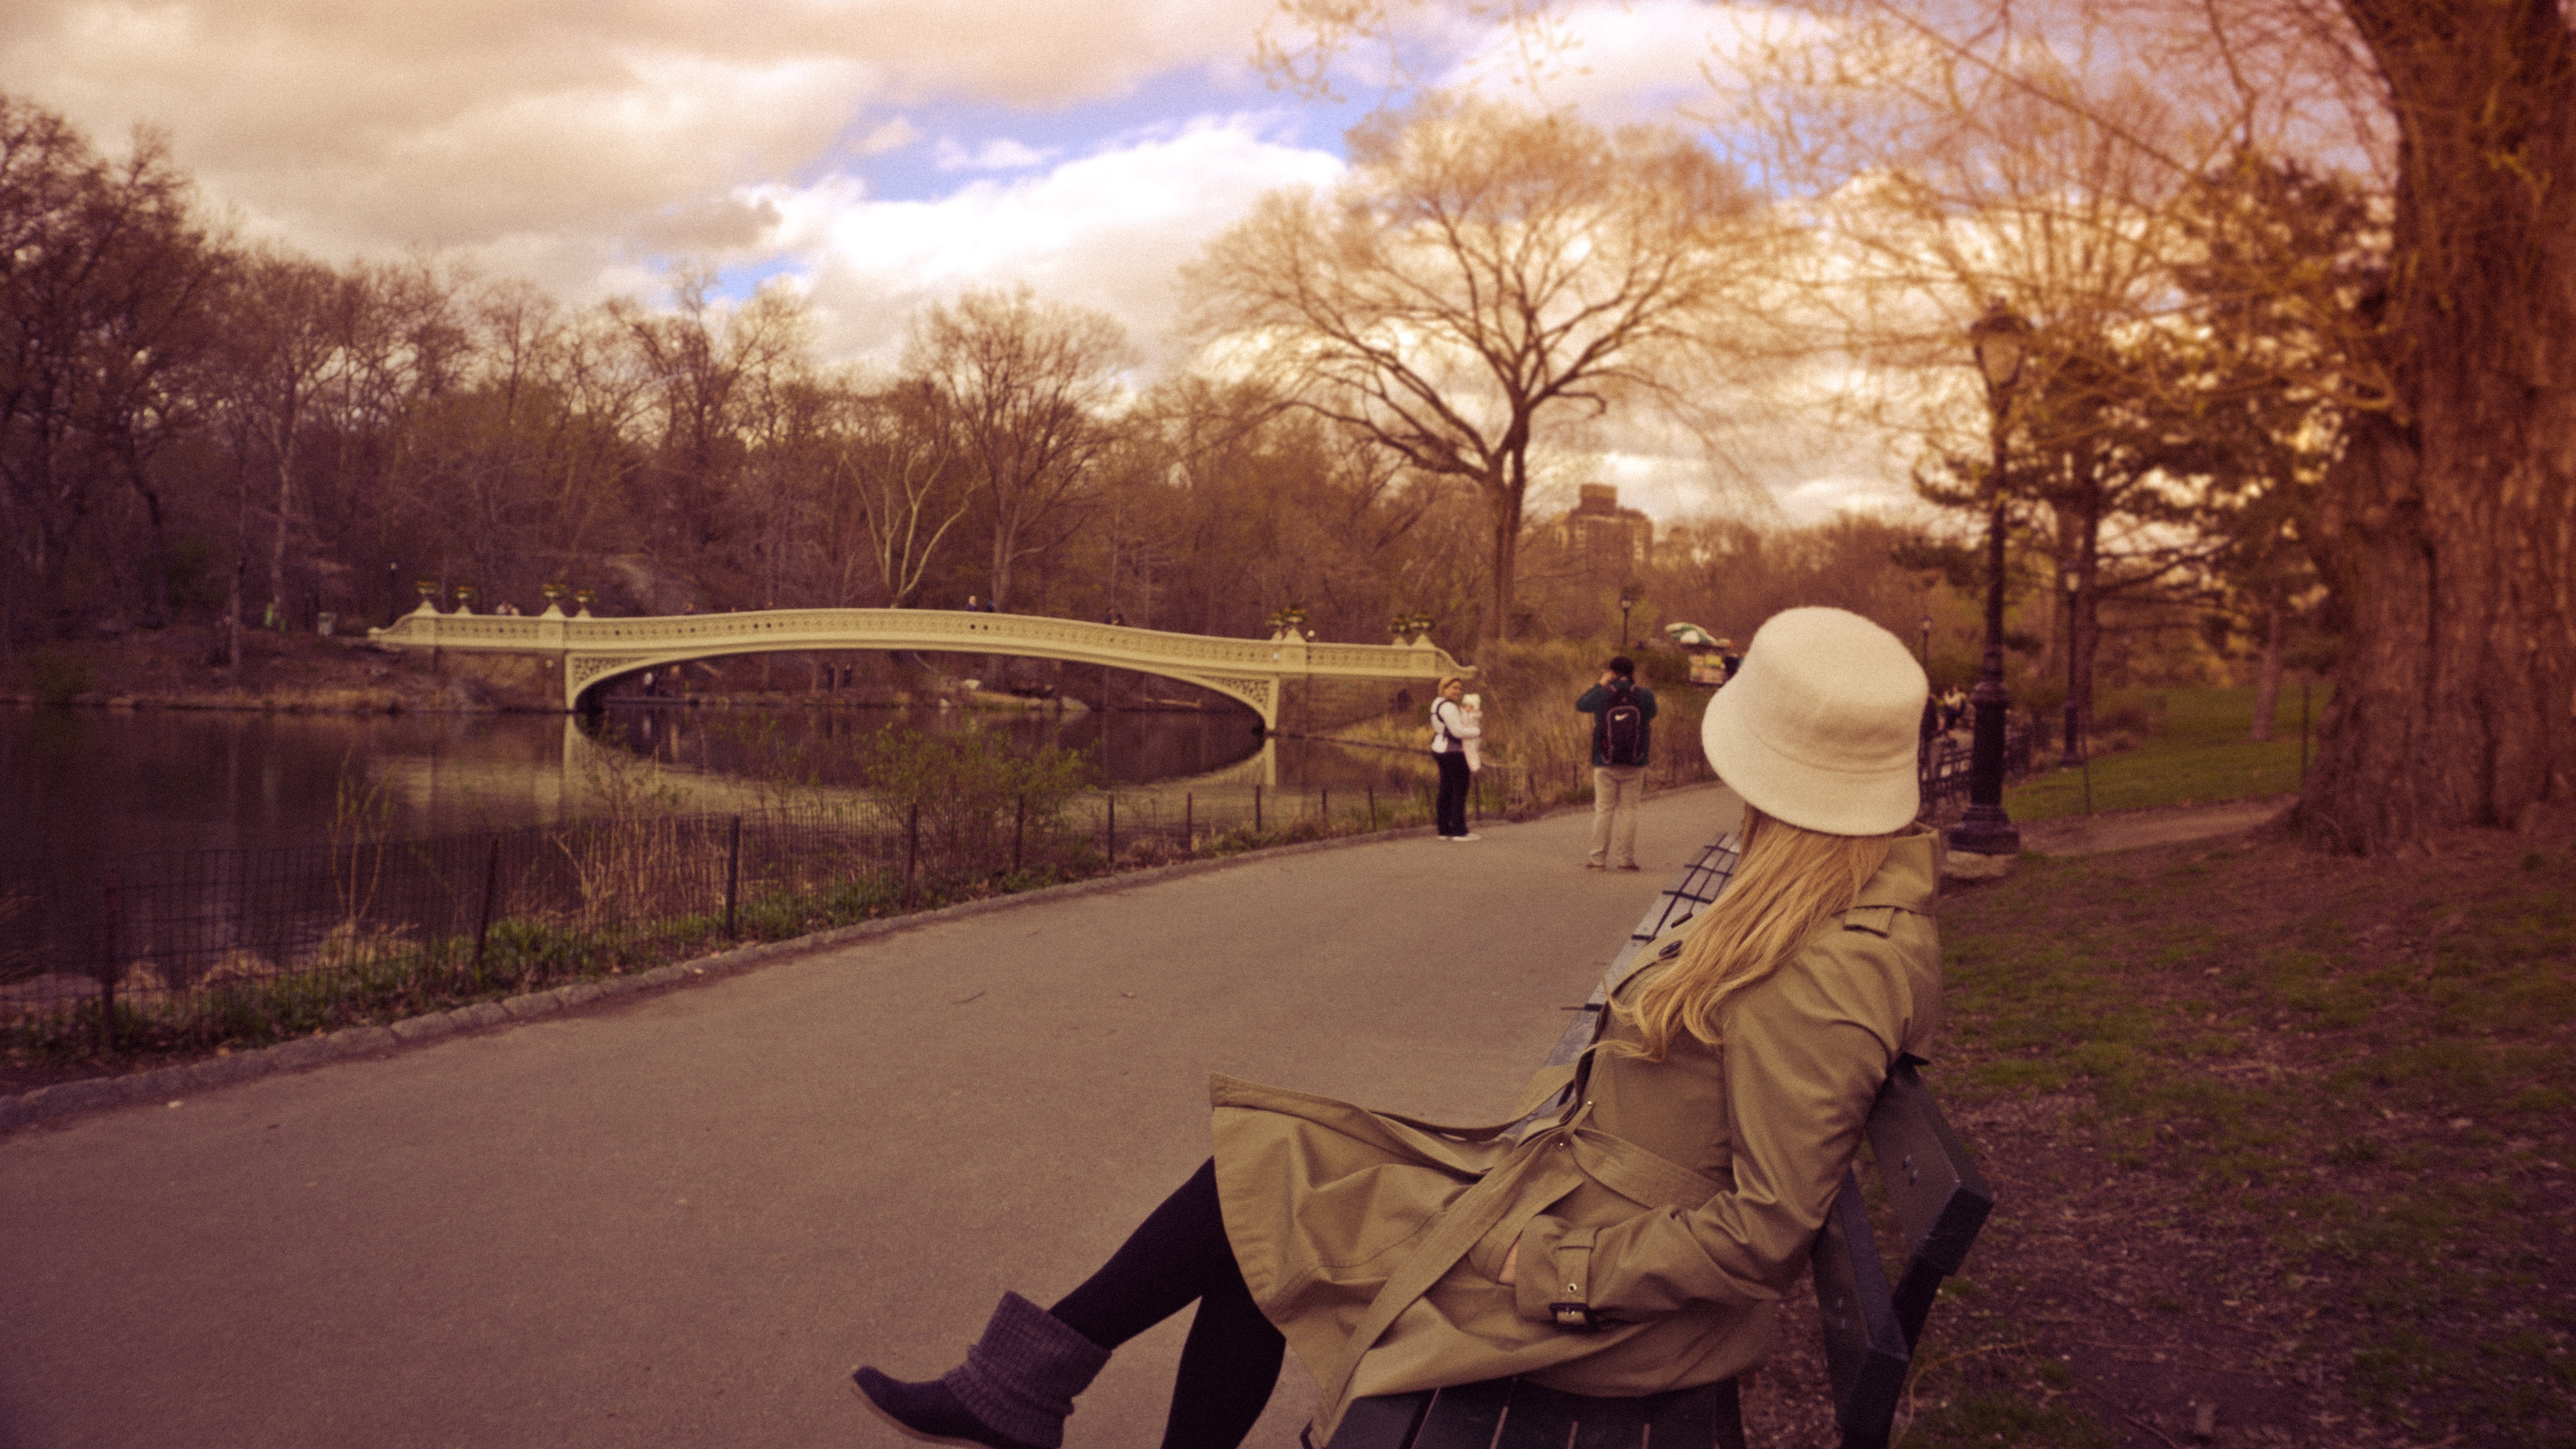 Woman in White Bucket Hat, Brown Coat and Boots Sitting on Bench at Park, Adult, Road, Weather, Water, HQ Photo